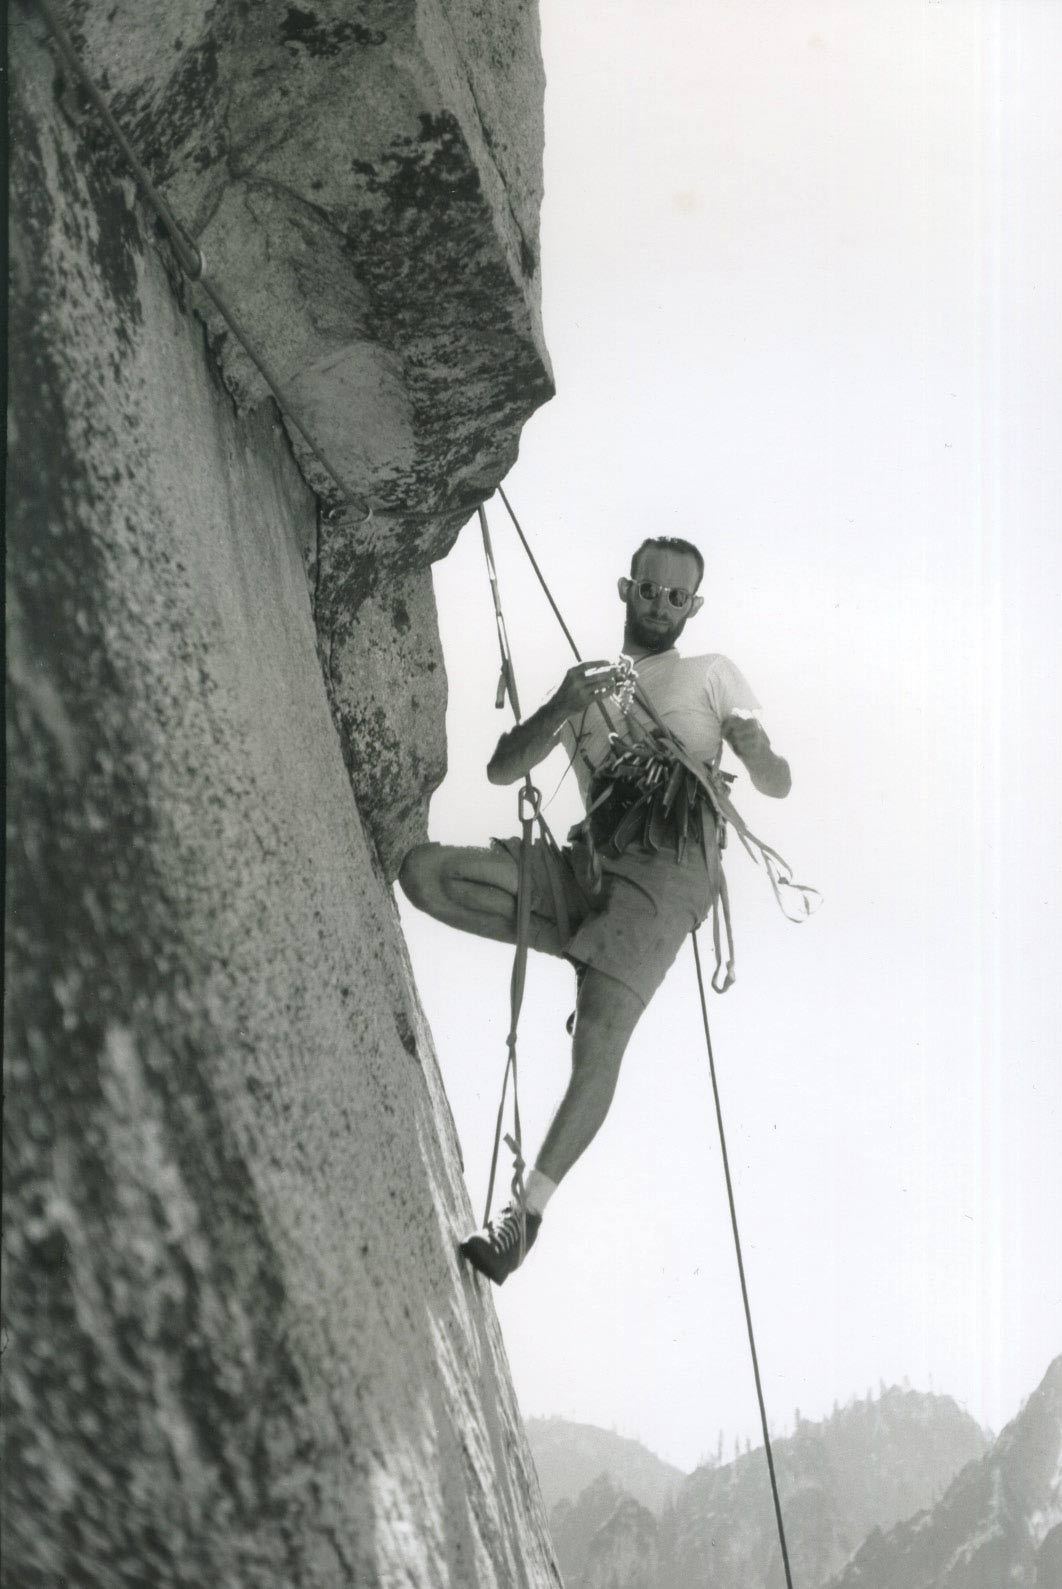 Royal Robbins leads the third pitch of the Salathé Wall during the first ascent in 1961.